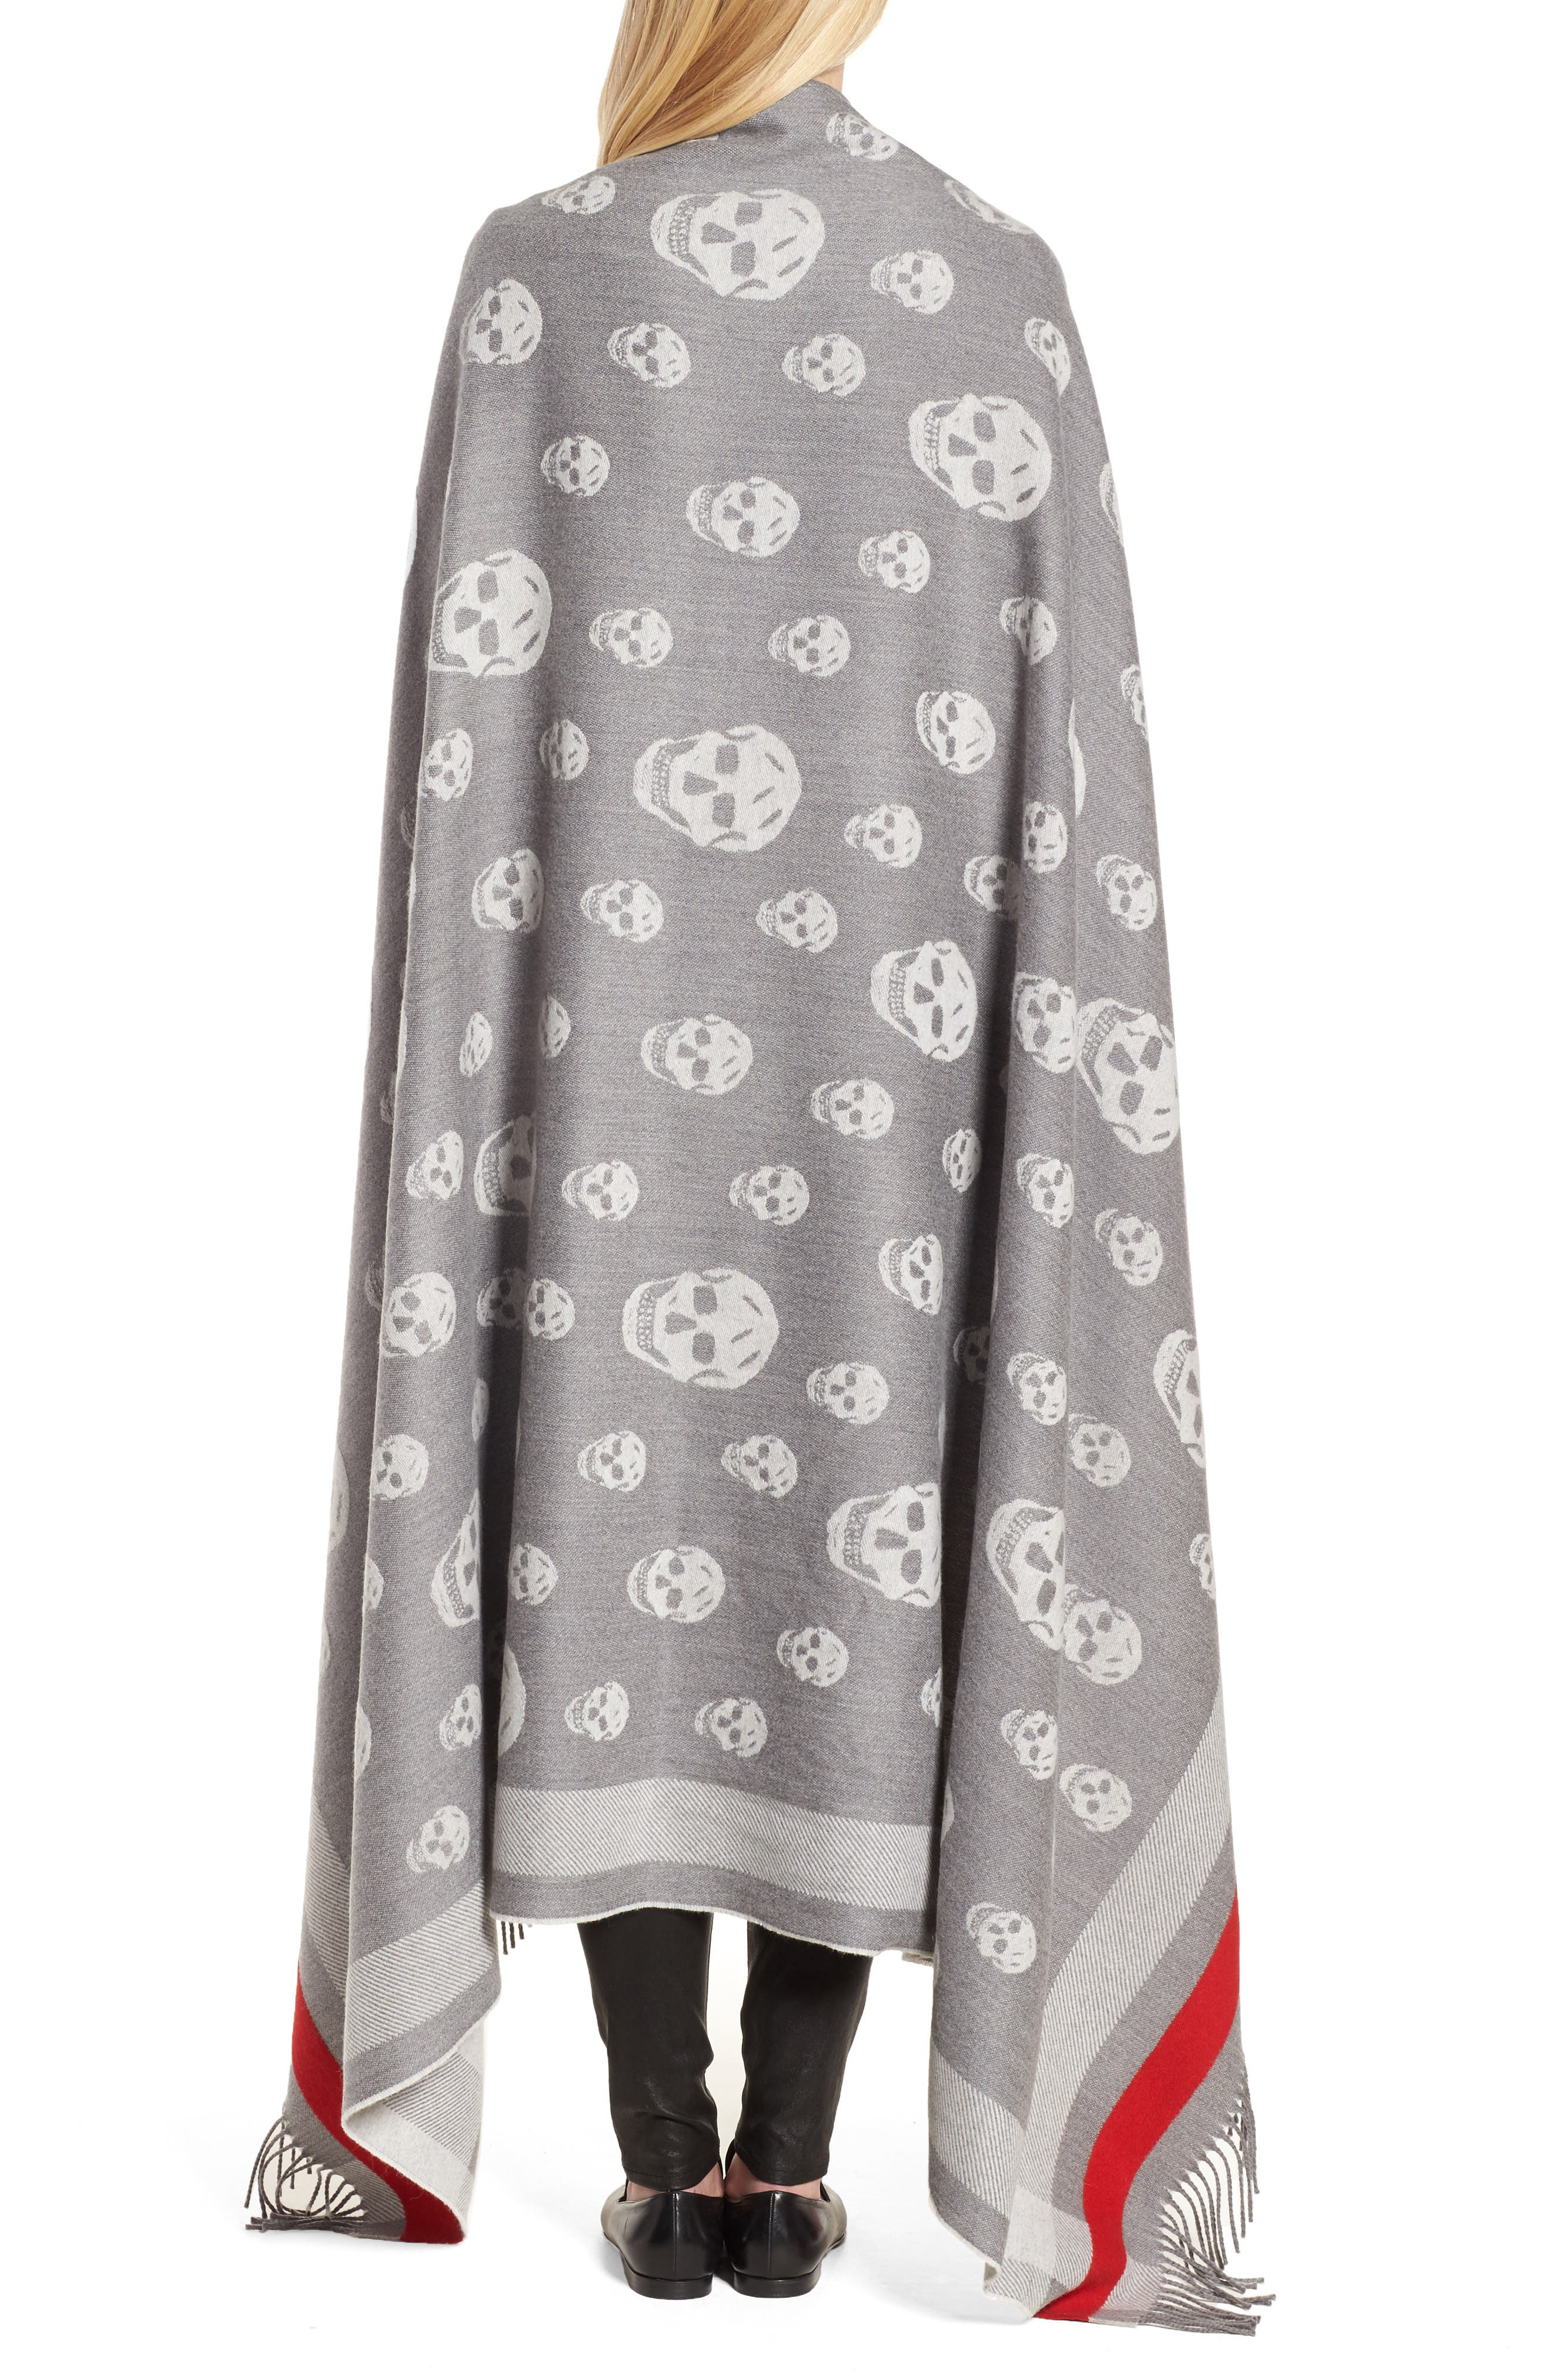 Skull Wool & Cashmere Scarf,                             Alternate thumbnail 2, color,                             020